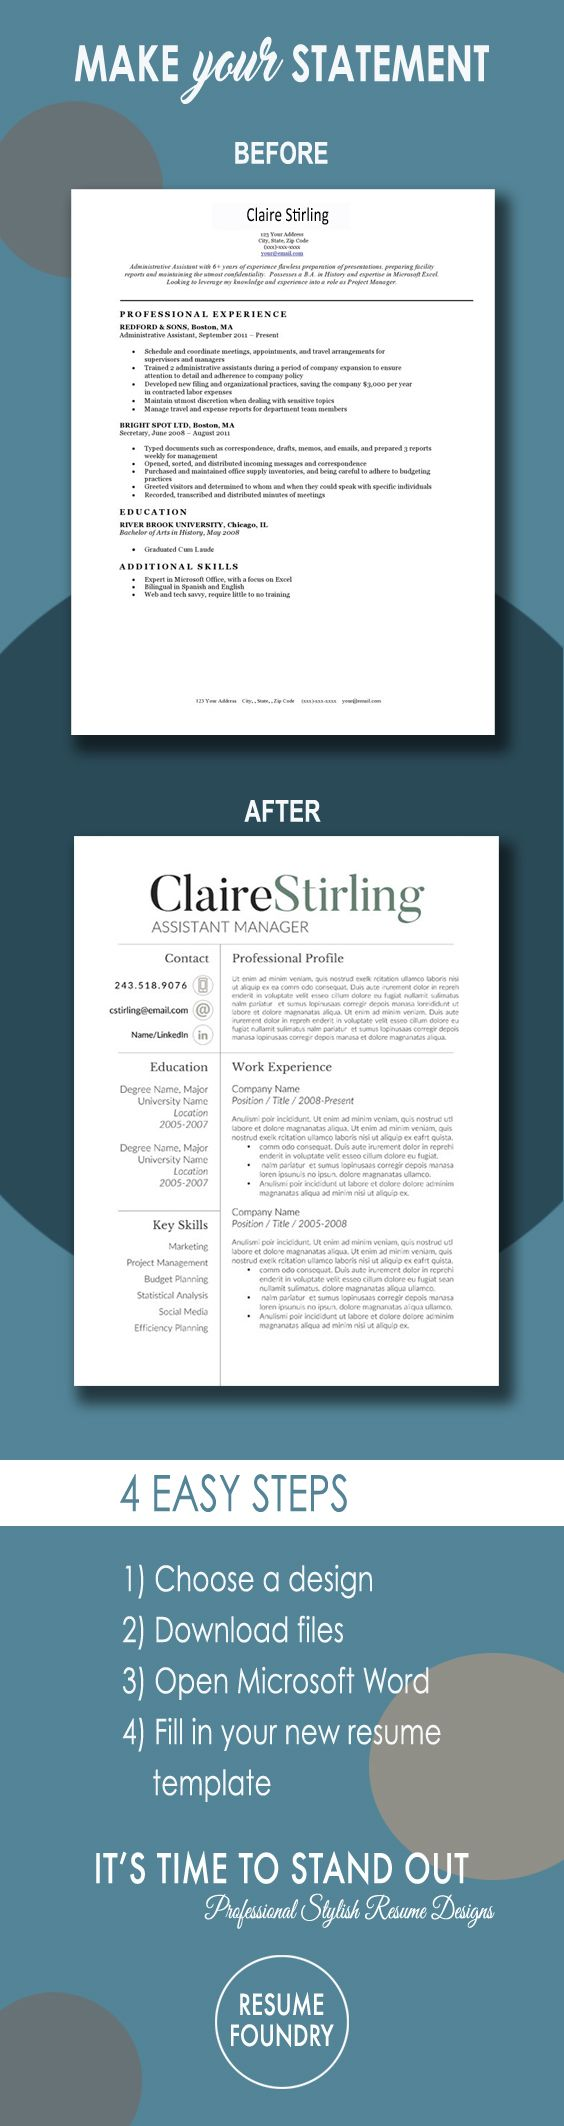 Modern Day Resume 169 Best Job Hunting Images On Pinterest  Resume Gym And Interview